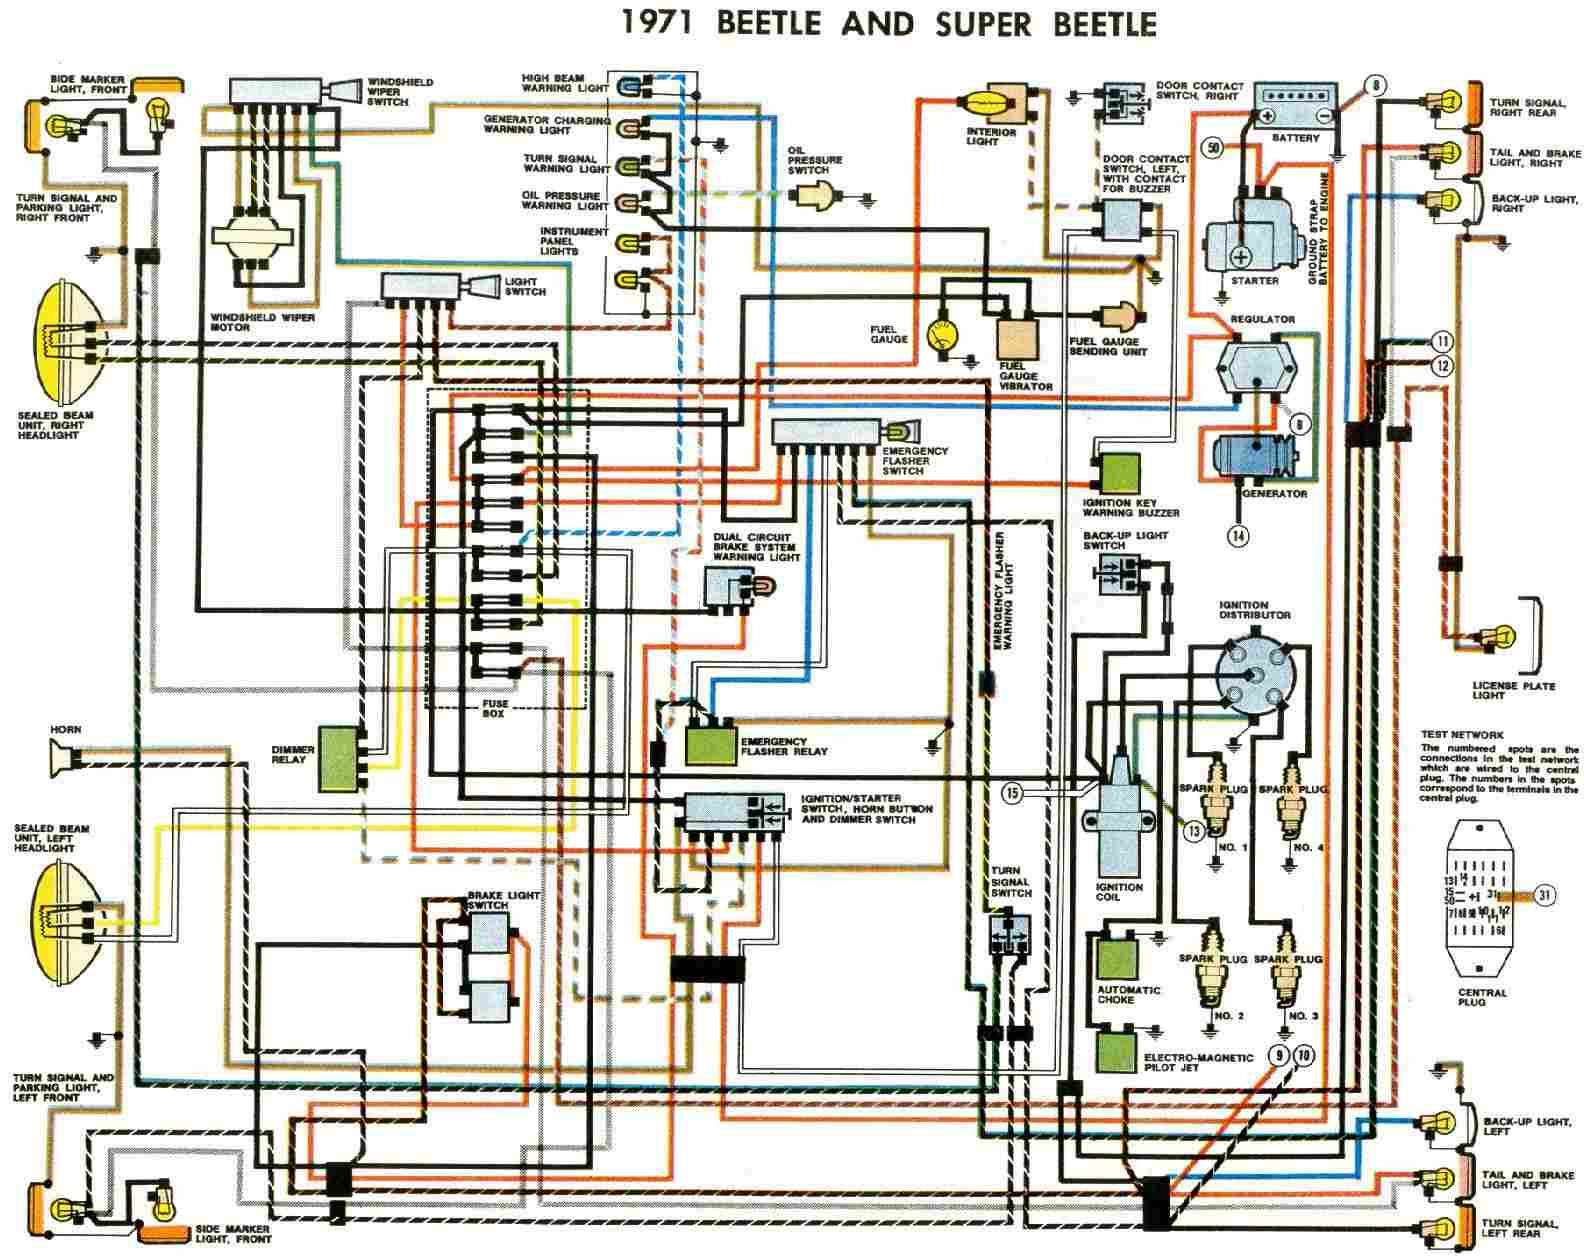 Free Auto Wiring Diagram  1971 Vw Beetle And Super Beetle